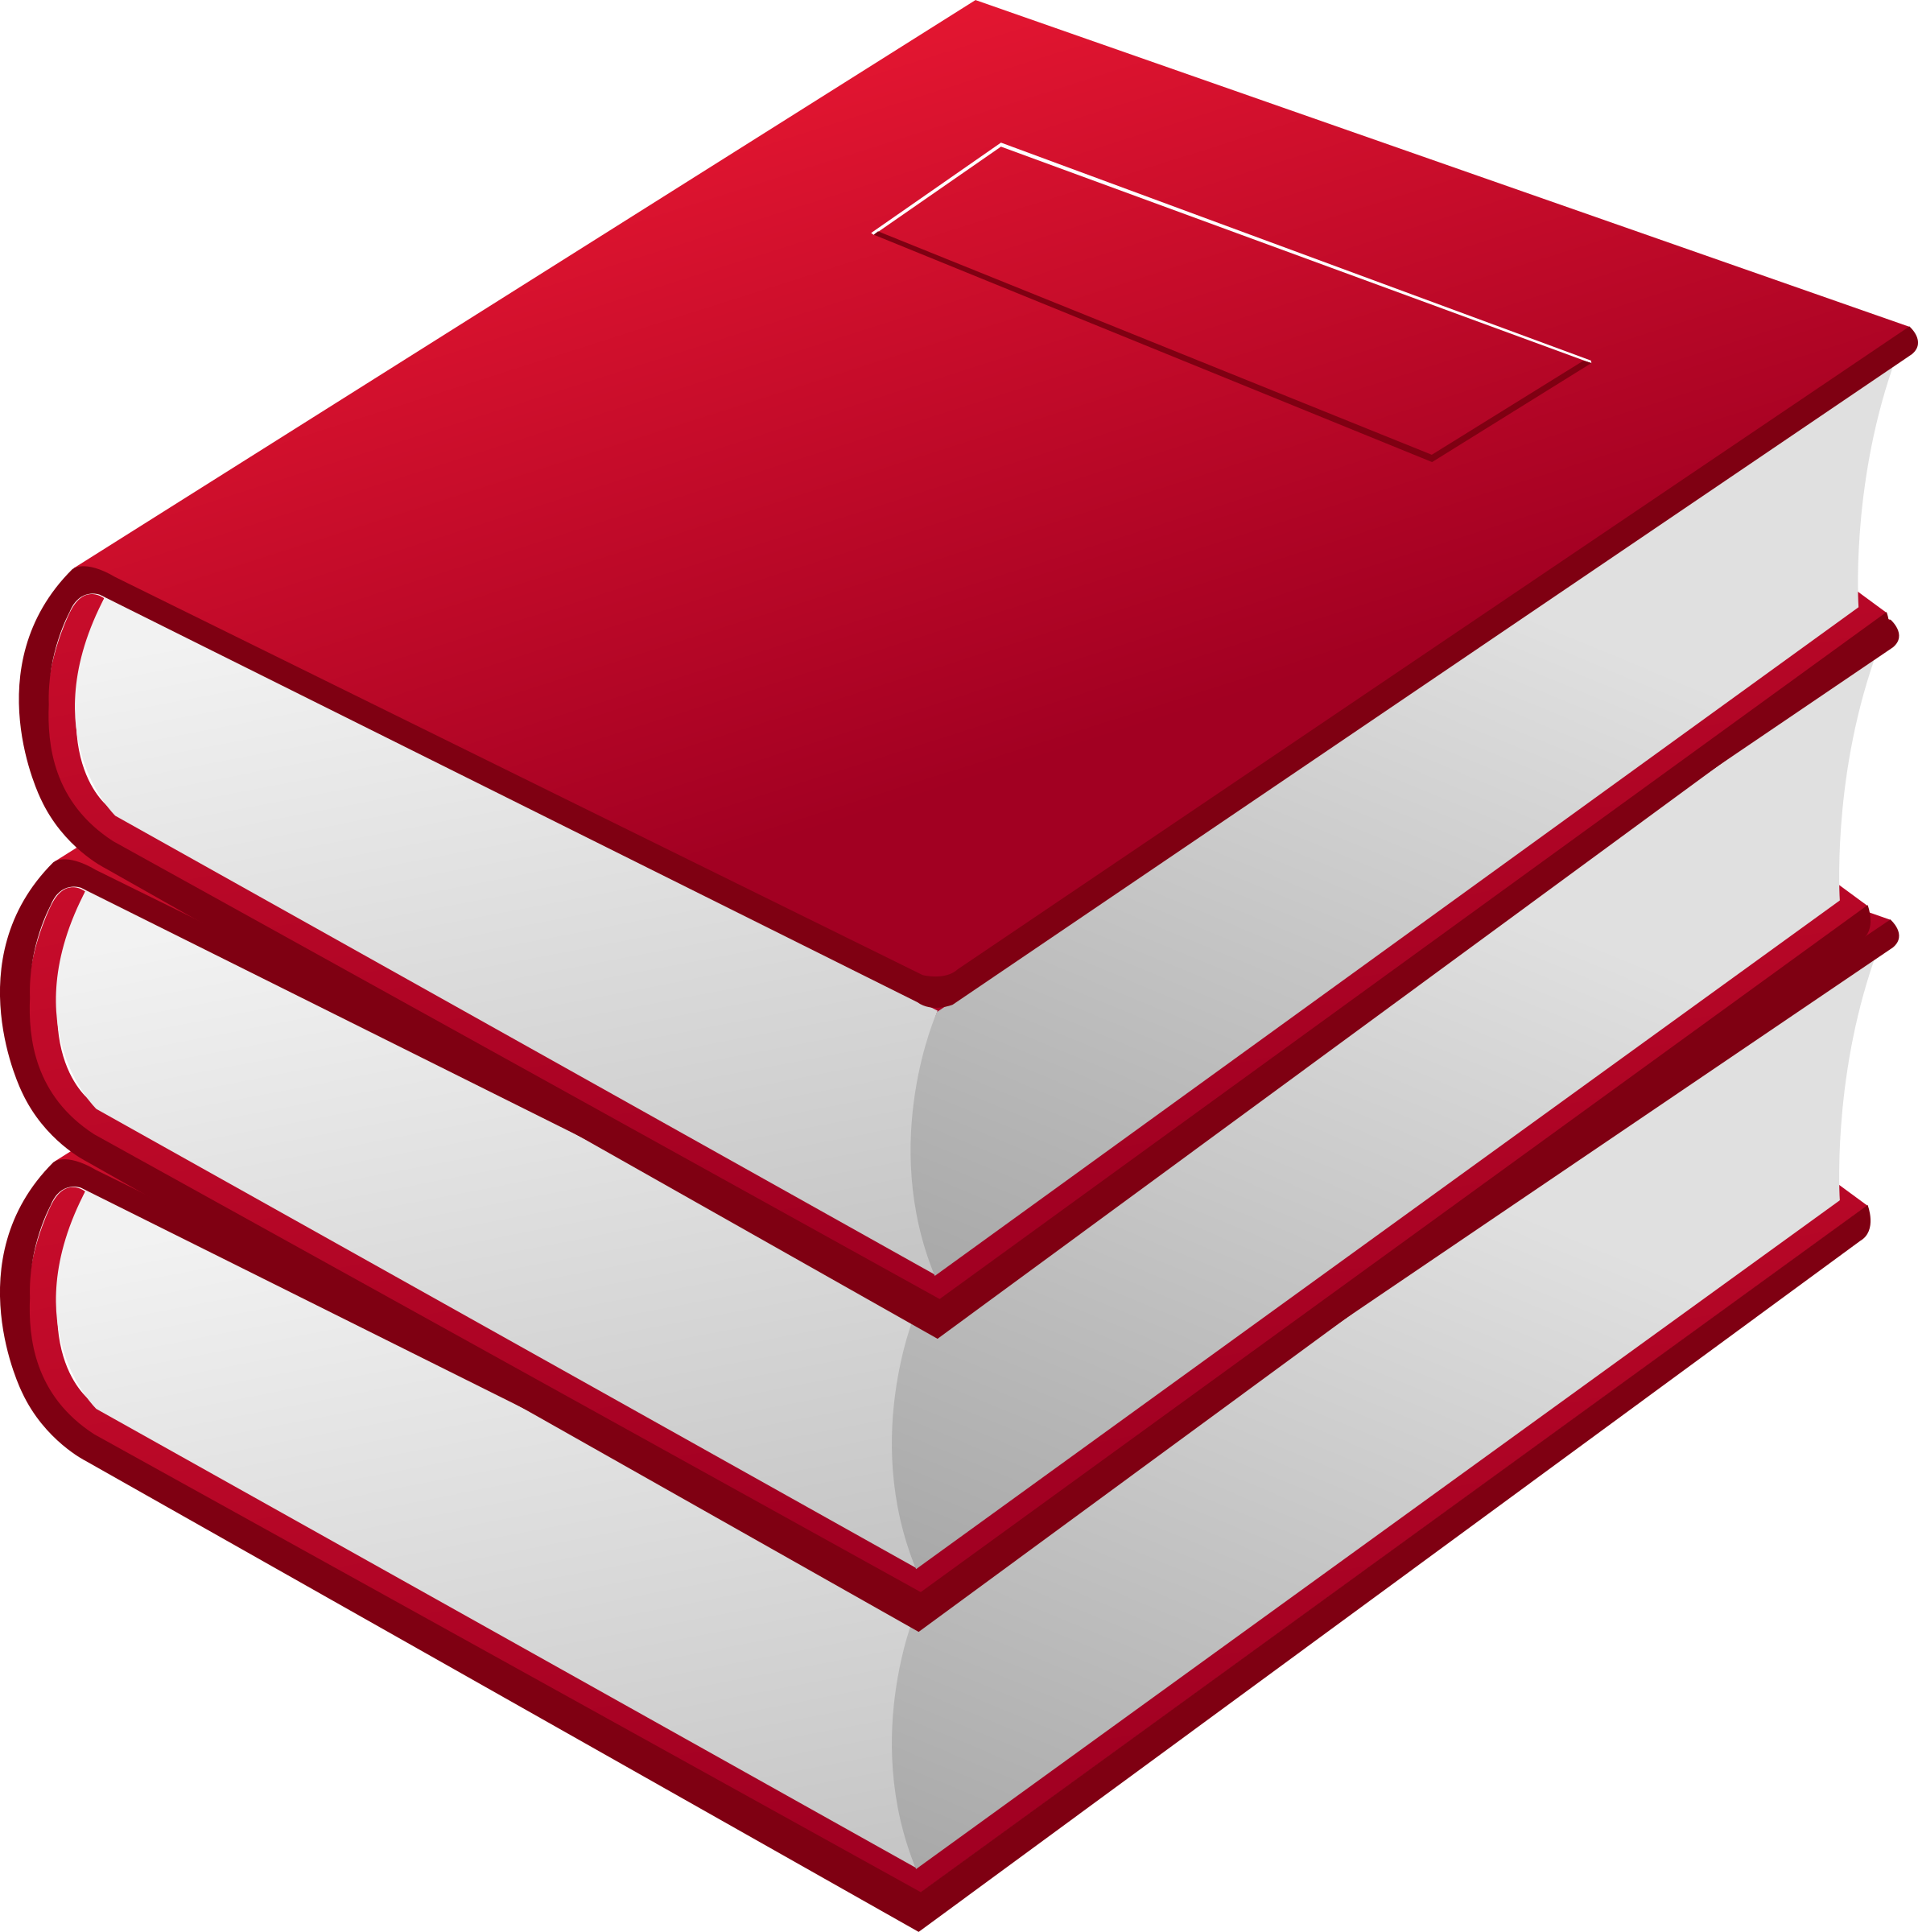 3 red books by dynnamitt